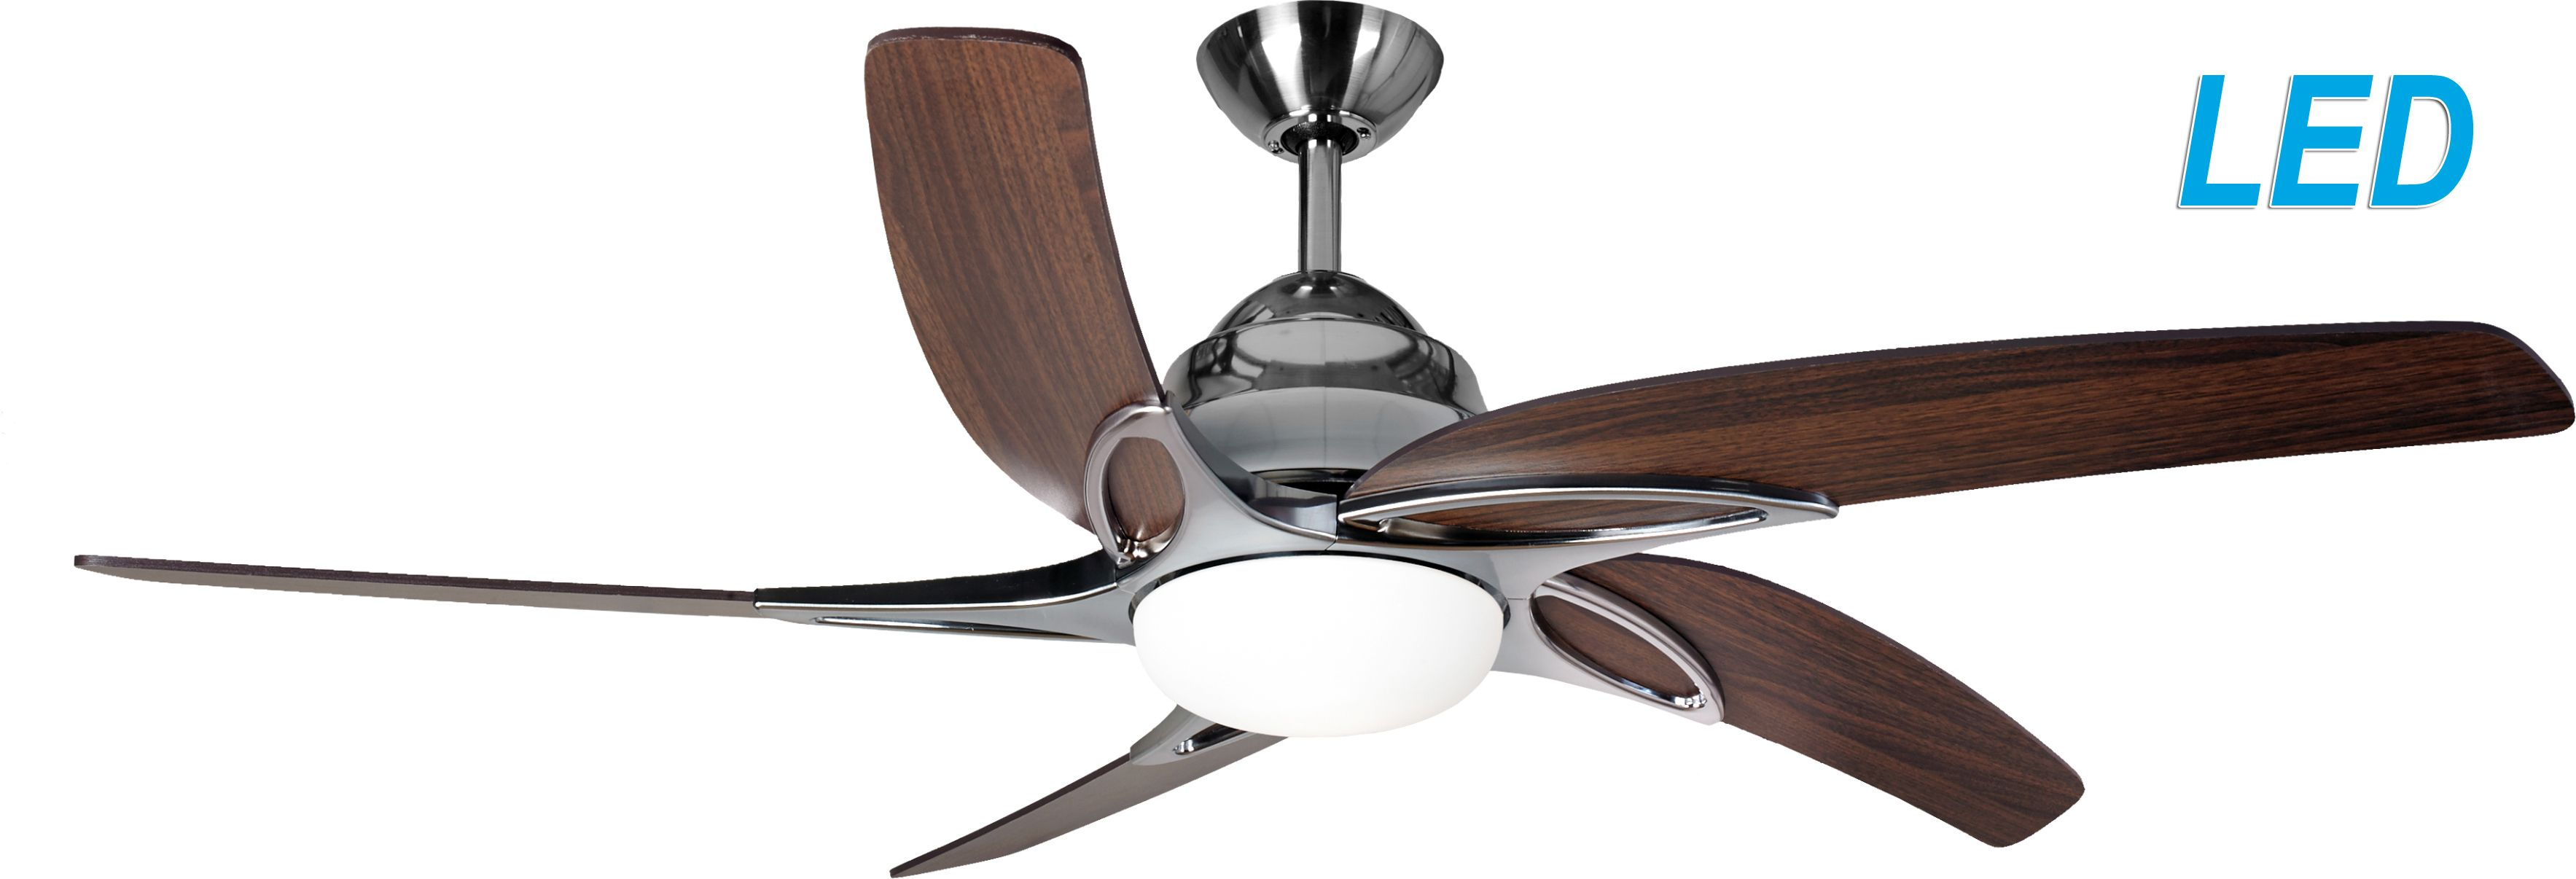 Fantasia viper 44 stainless steel with dark oak blades ceiling fan fantasia viper 44 stainless steel with dark oak blades ceiling fan remote led light 115649 aloadofball Choice Image